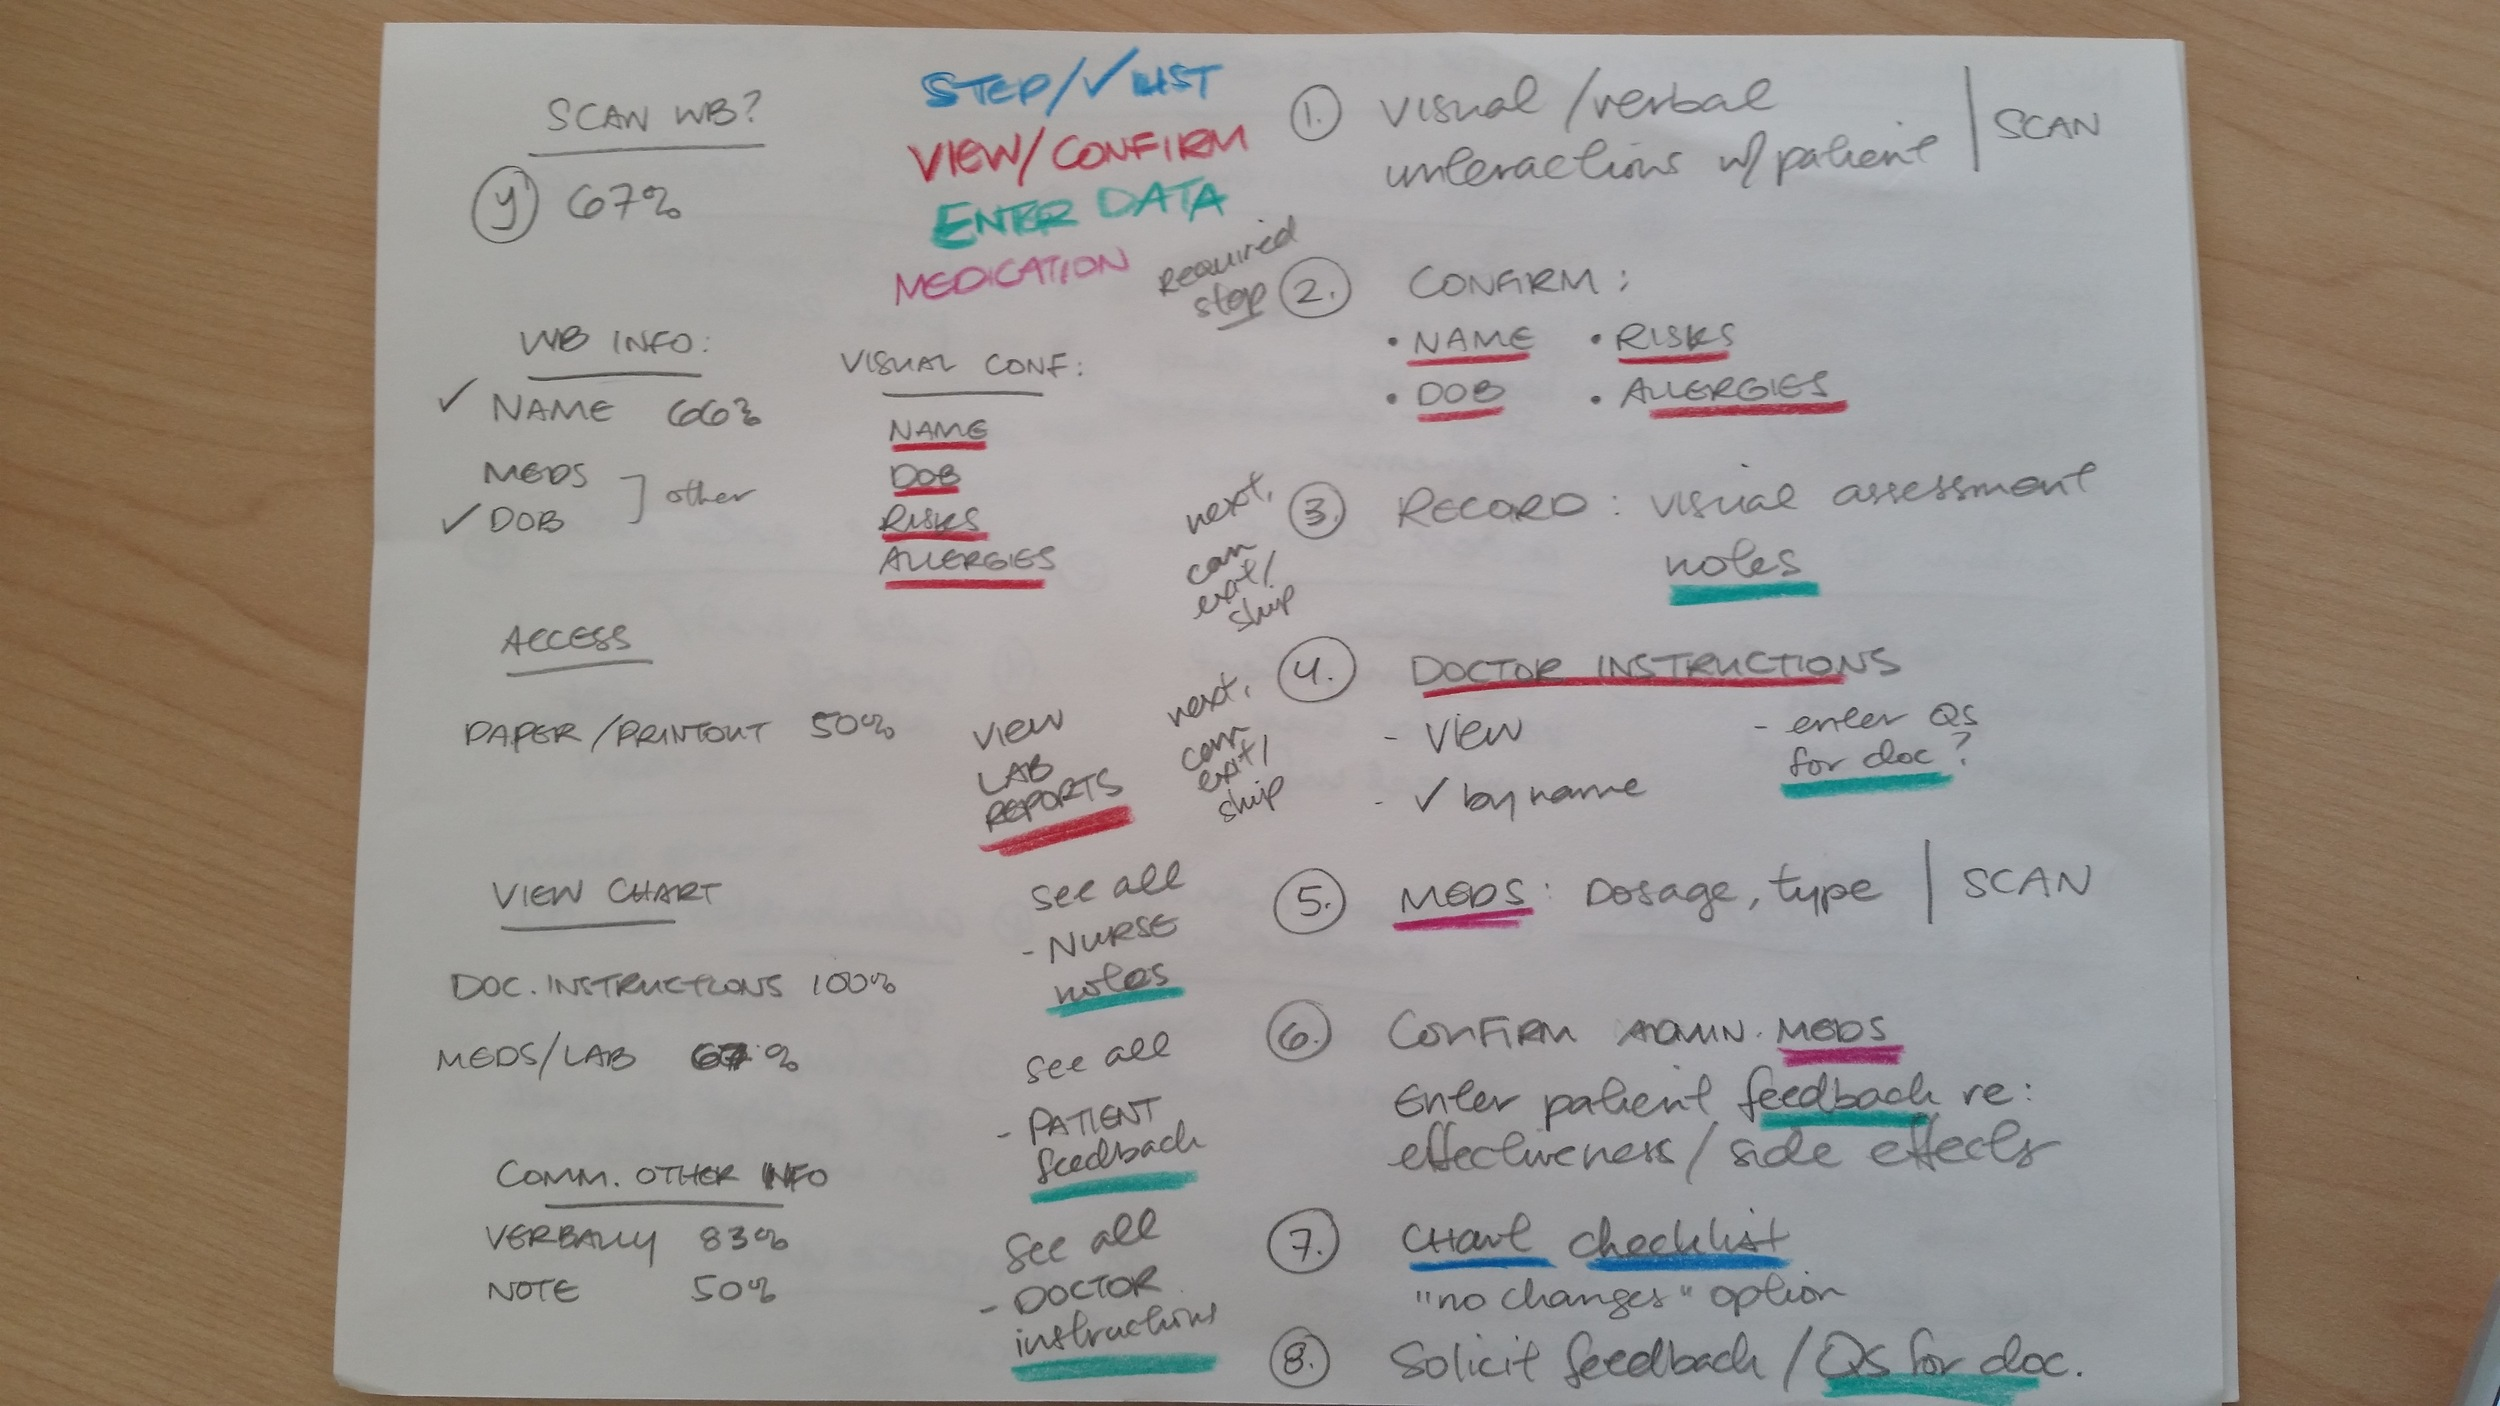 Content notes